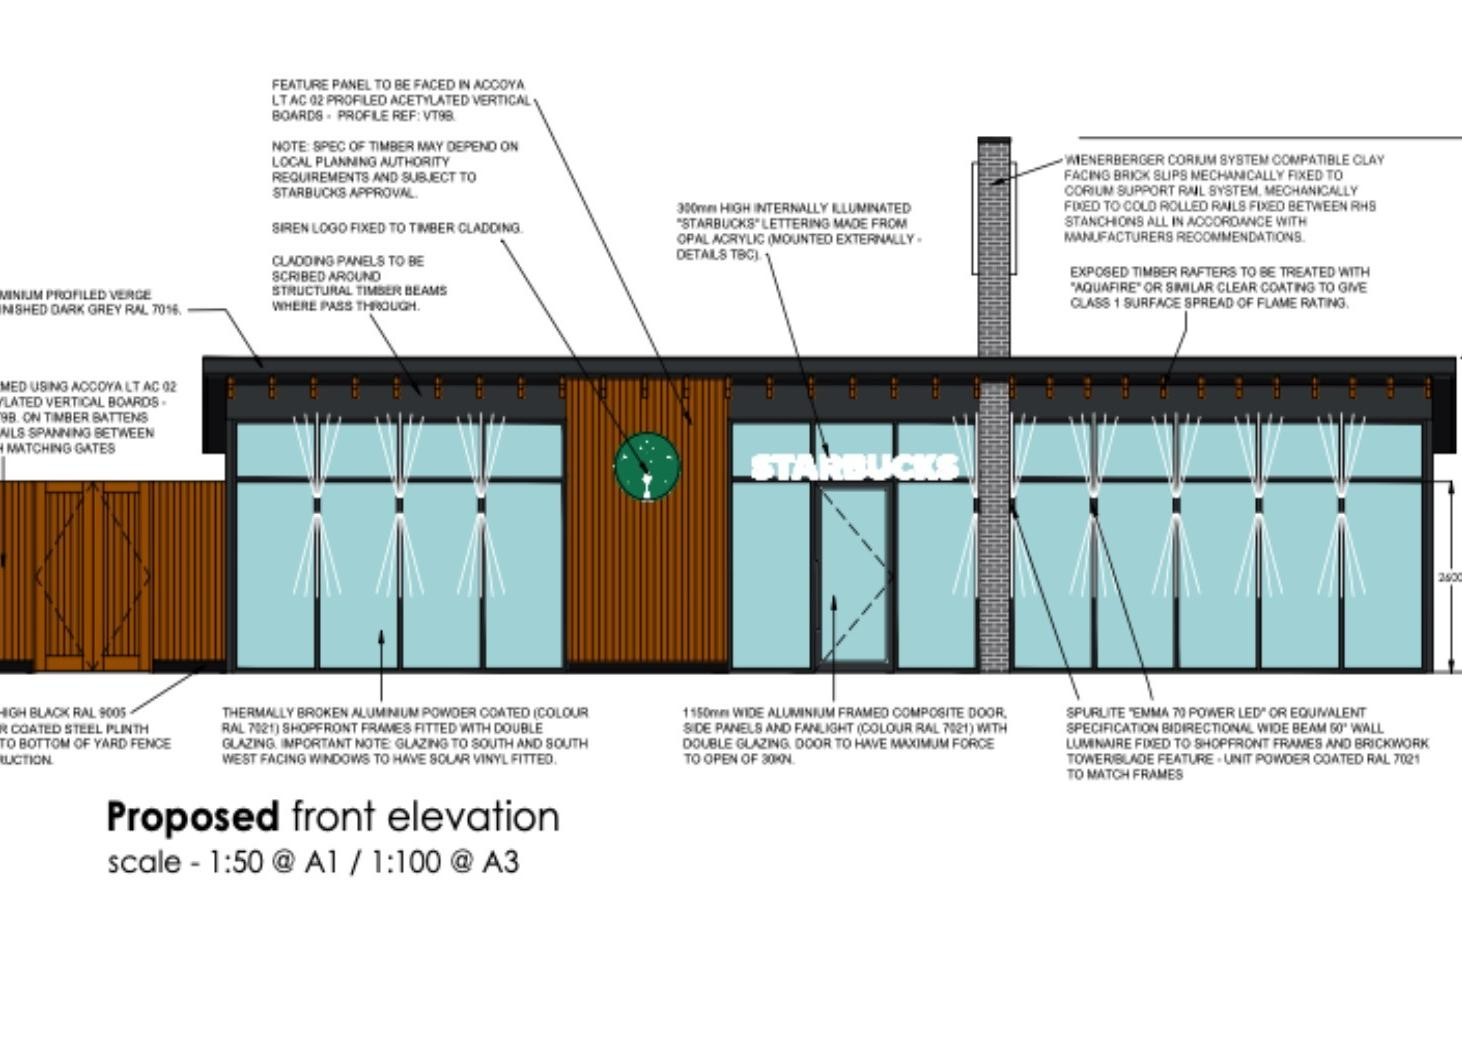 New Starbucks drive-thru proposed for outskirts of Boston